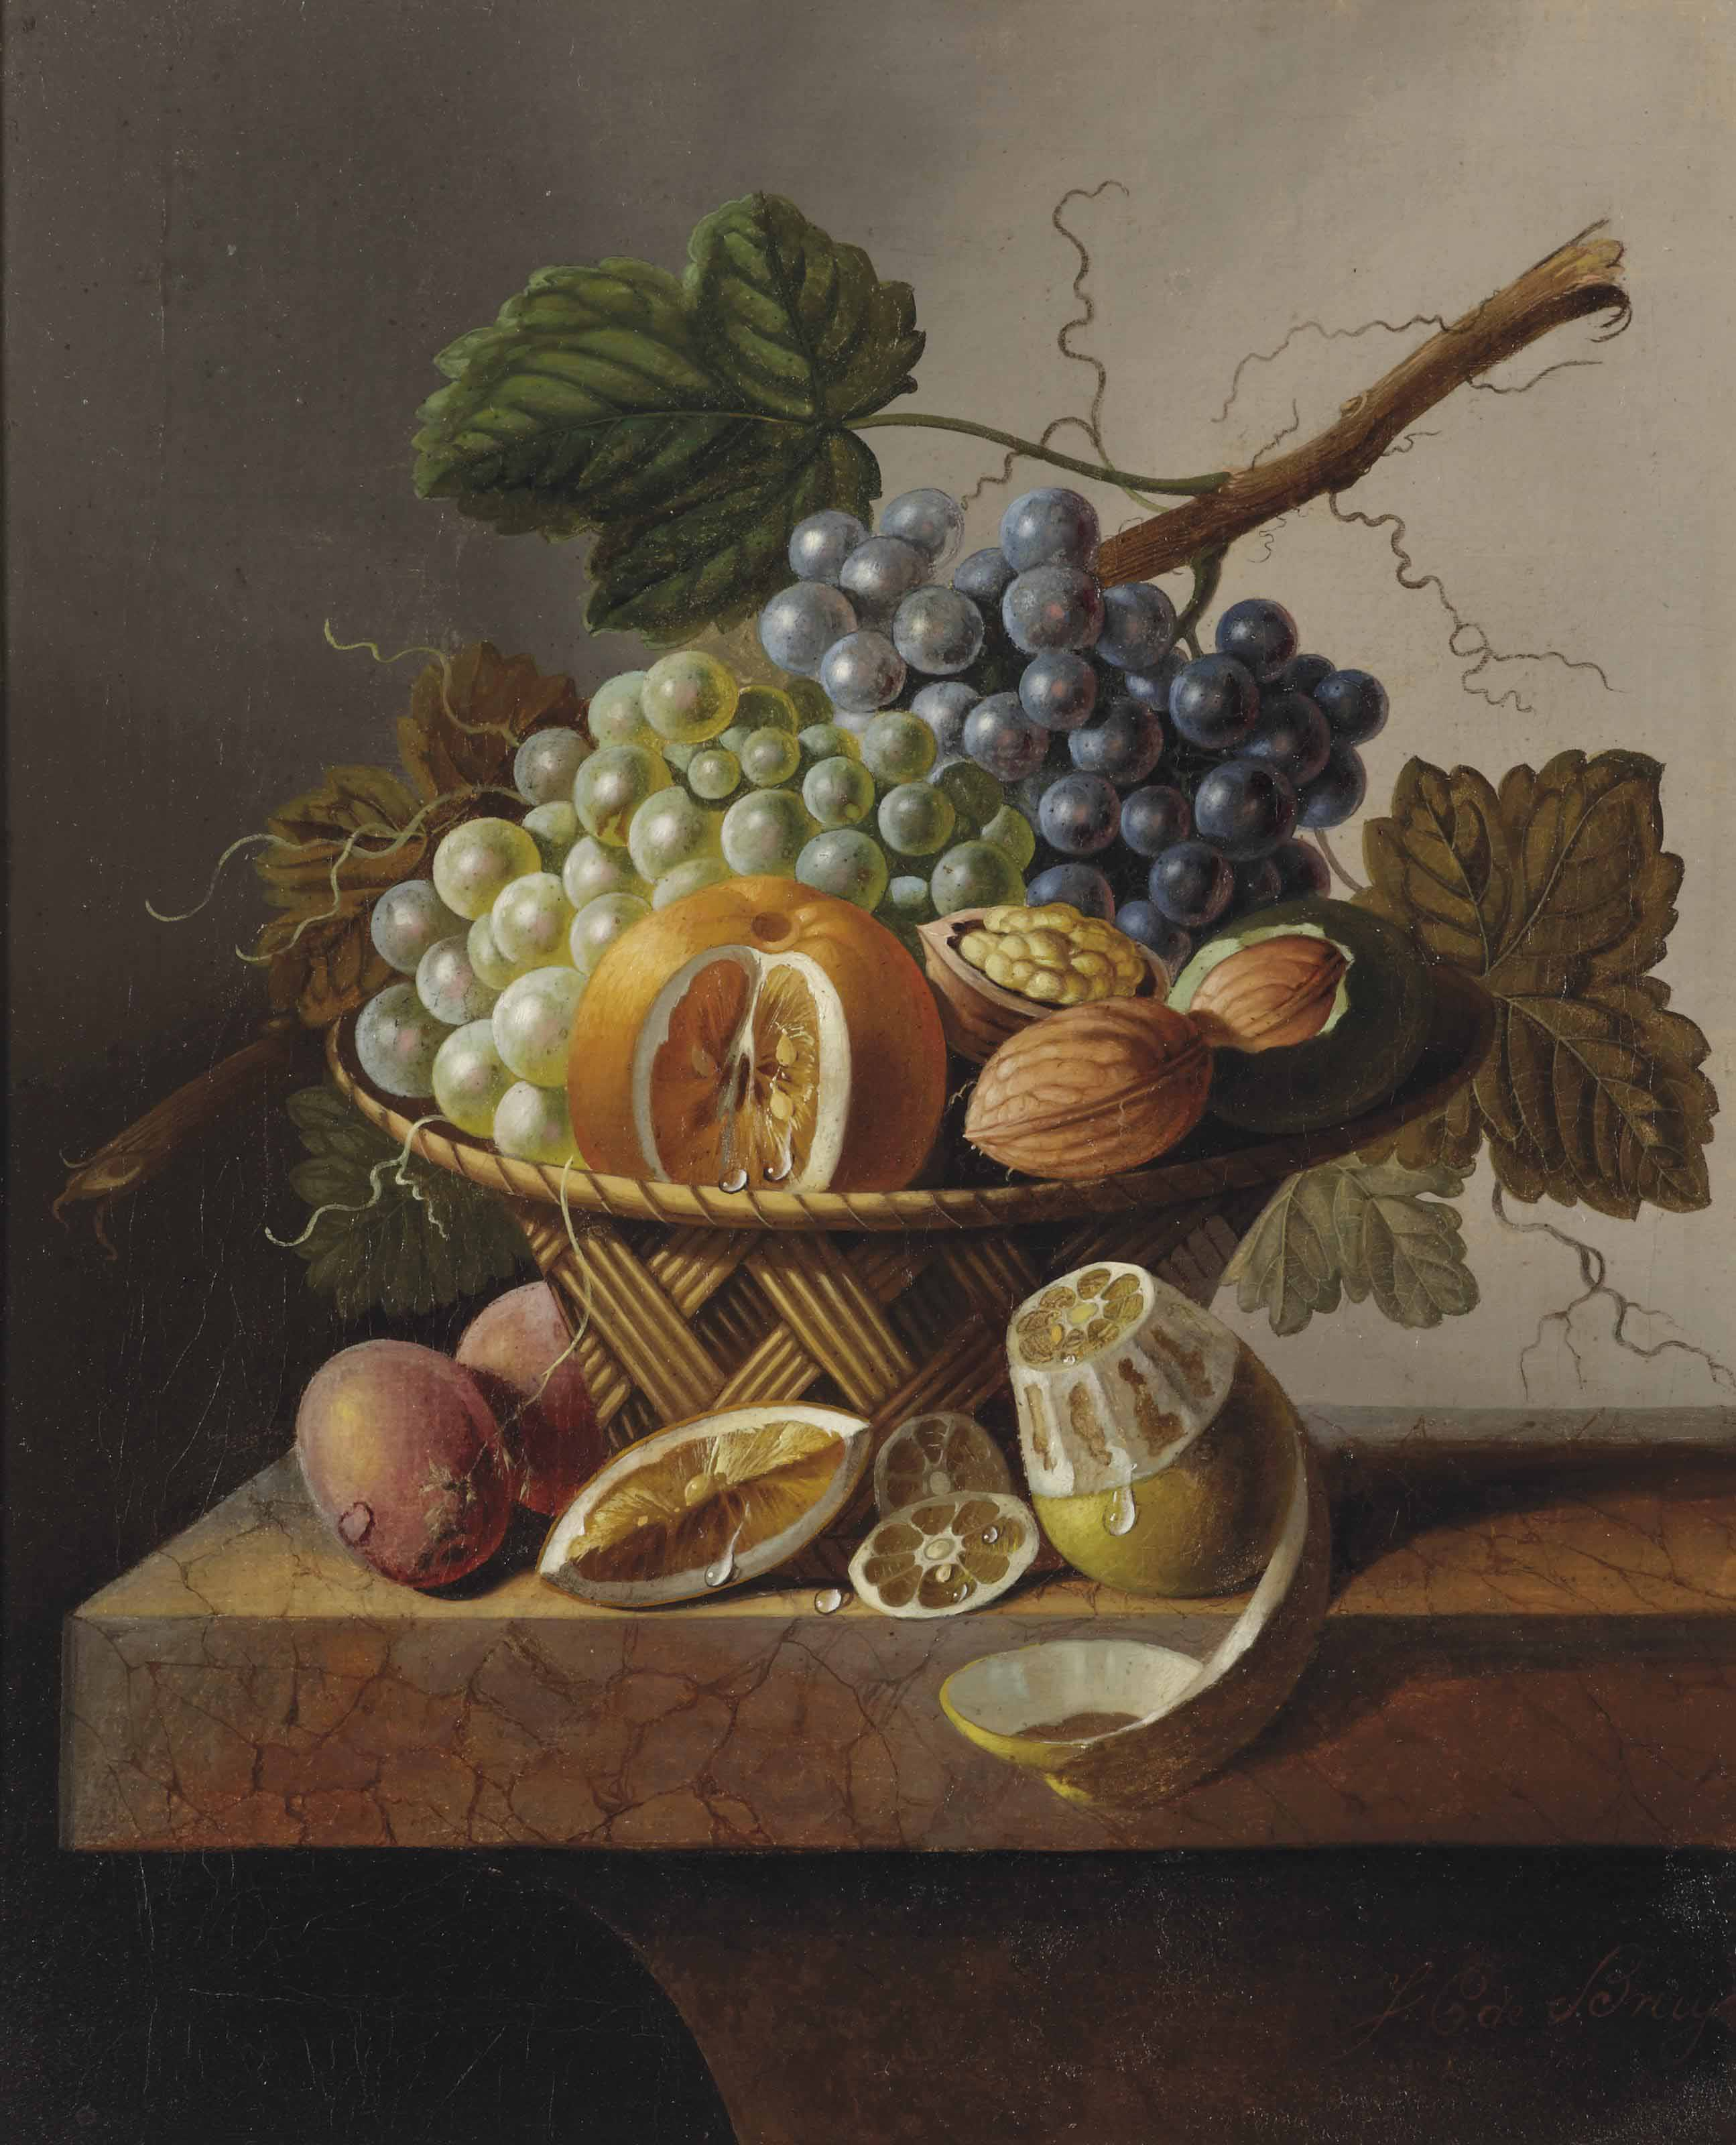 Grapes, an orange and walnuts in a wicker basket with a lemon and plums, all on a marble ledge